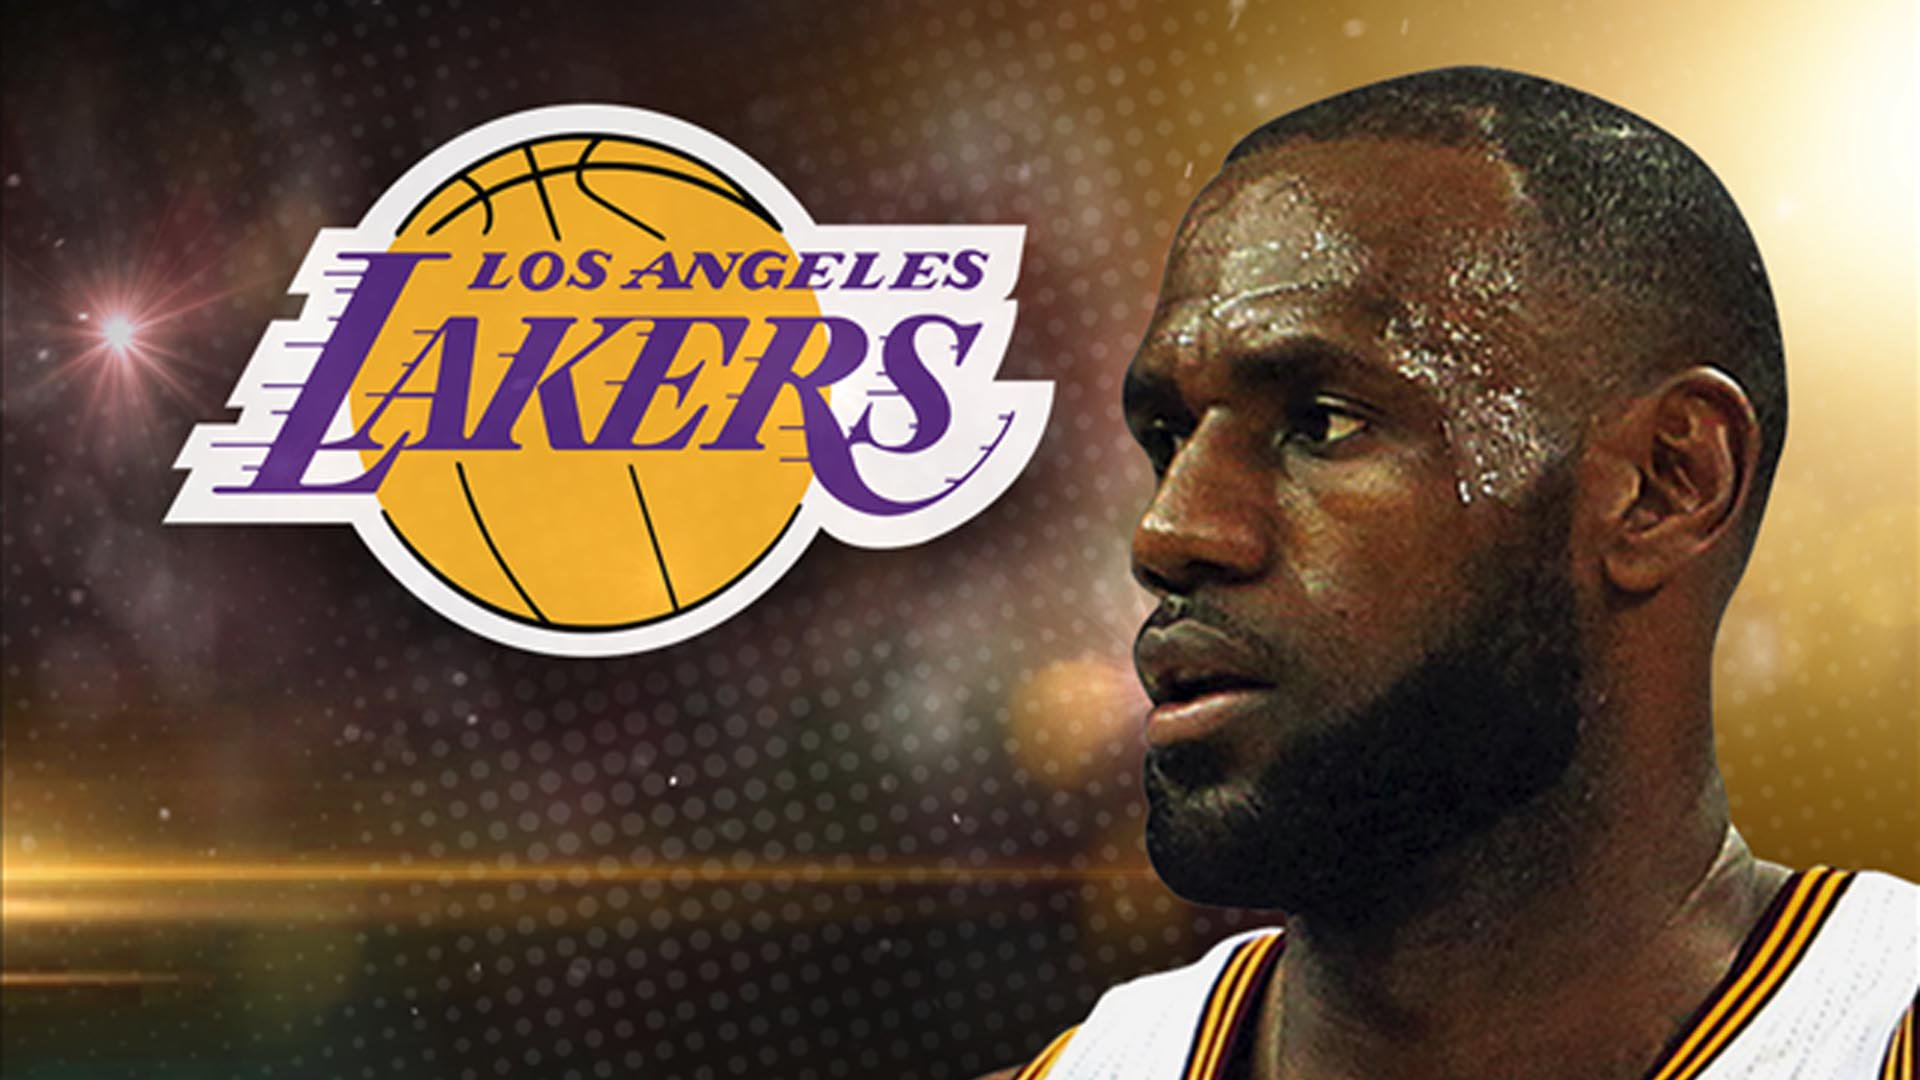 Lakers And James - Lebron James Lakers 2019 , HD Wallpaper & Backgrounds